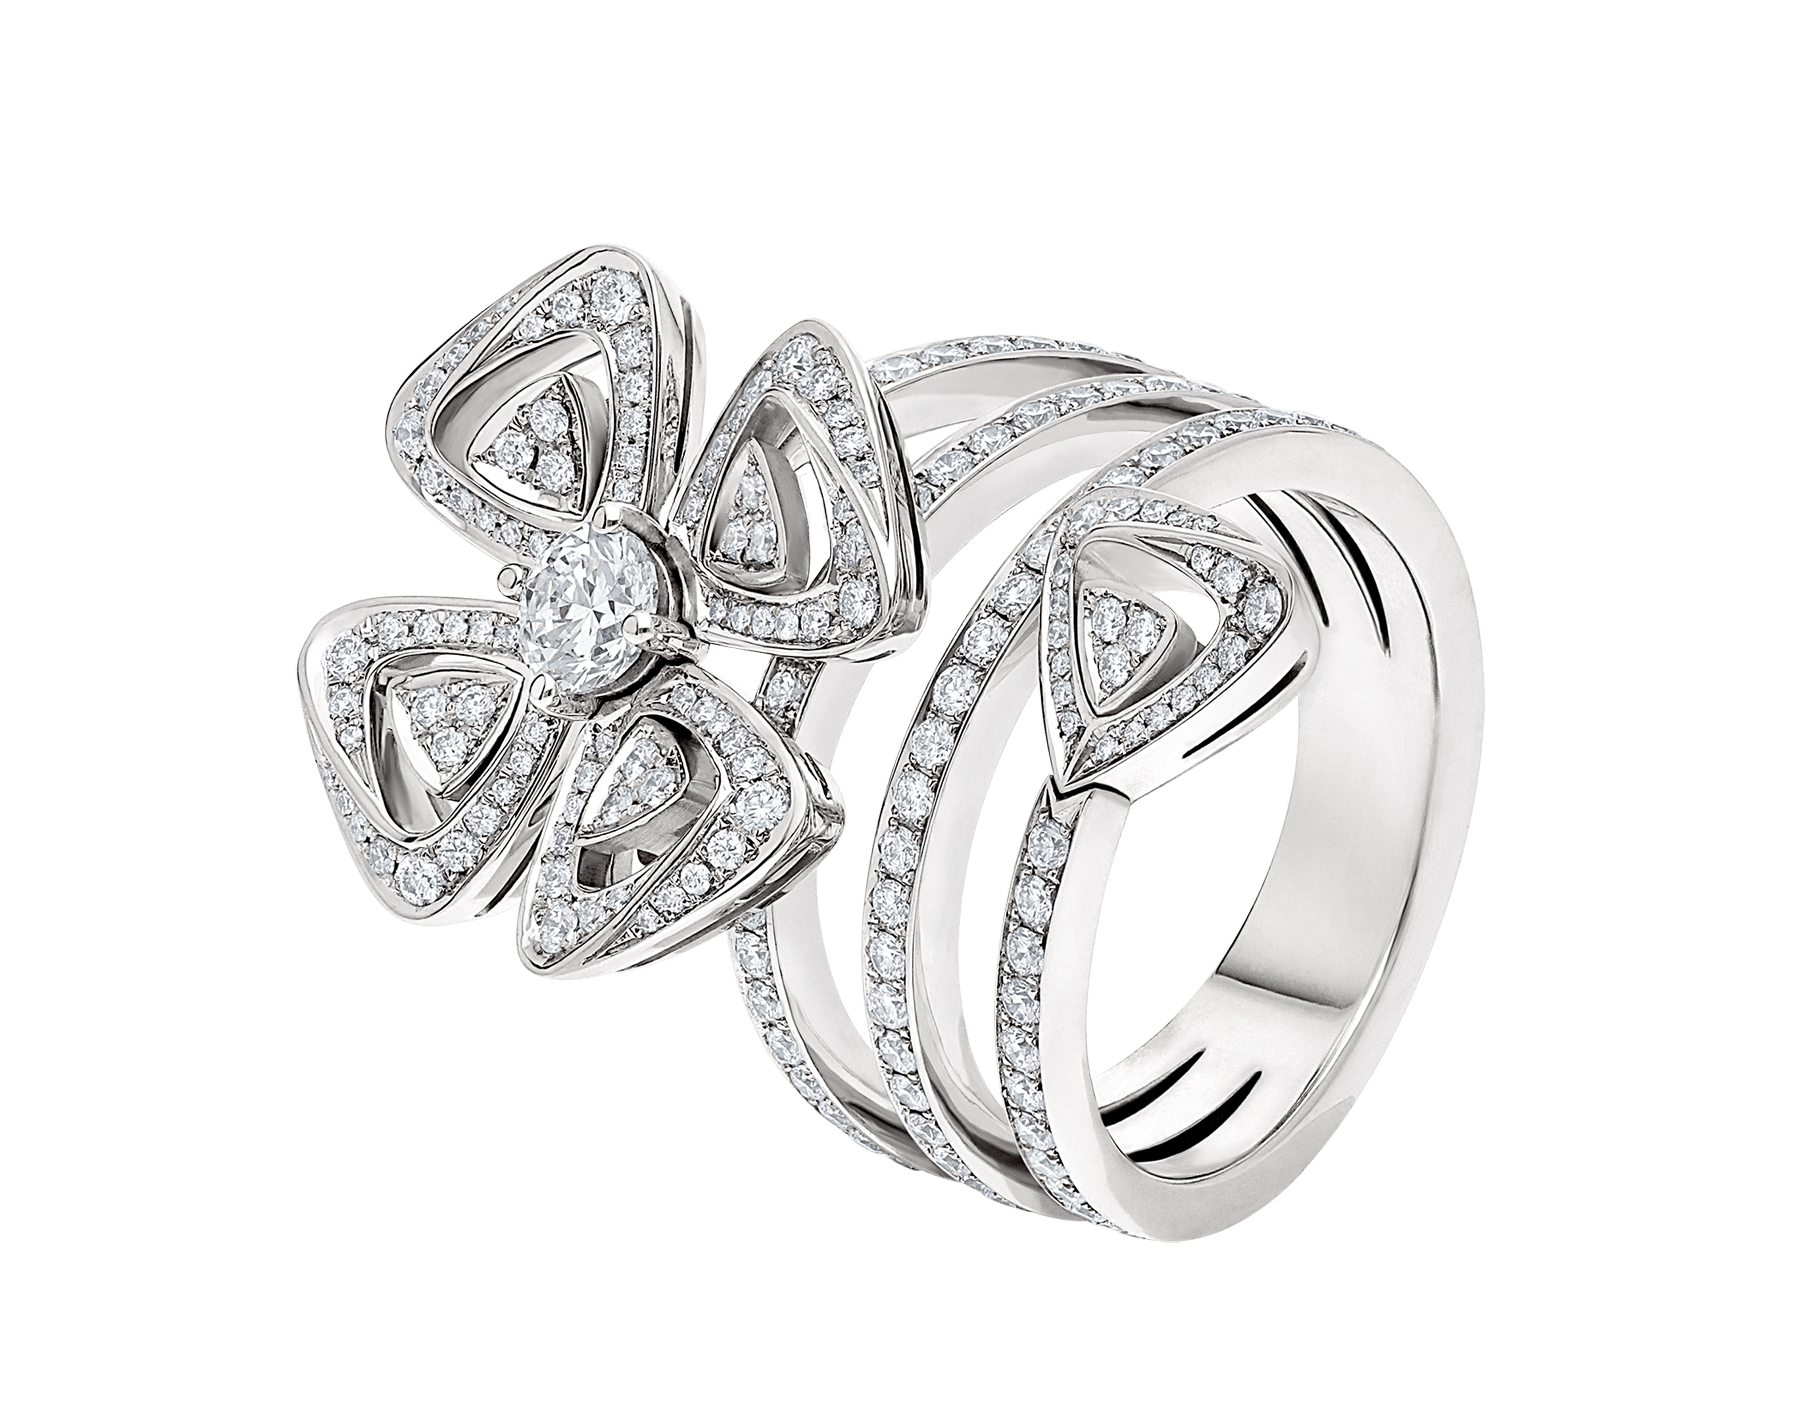 Fiorever 18 kt white gold ring set with a central brilliant-cut diamond (0.30 ct) and pavé diamonds (0.79 ct) AN859148 image 1